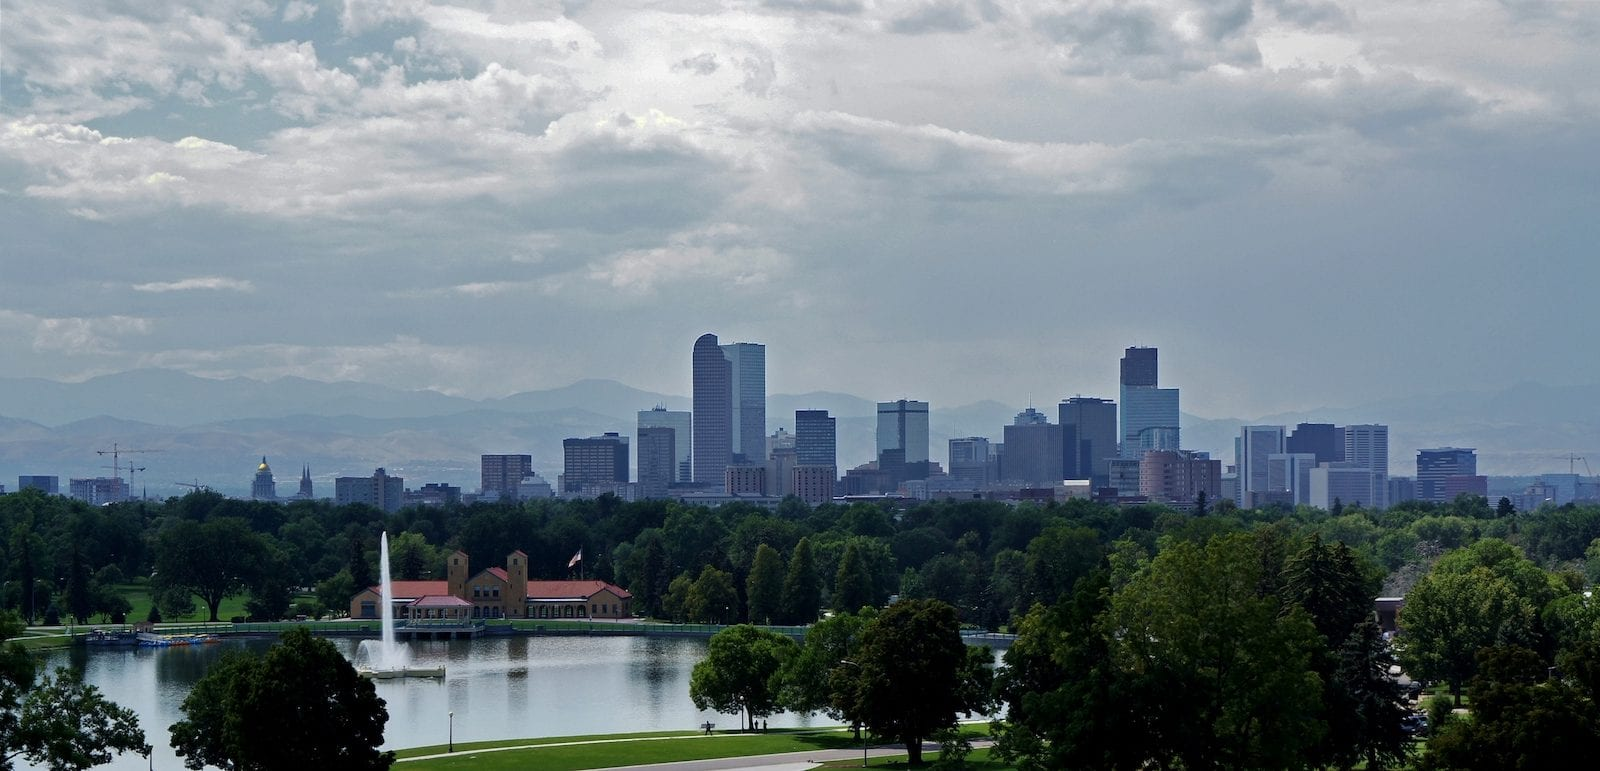 Mile High City, Colorado